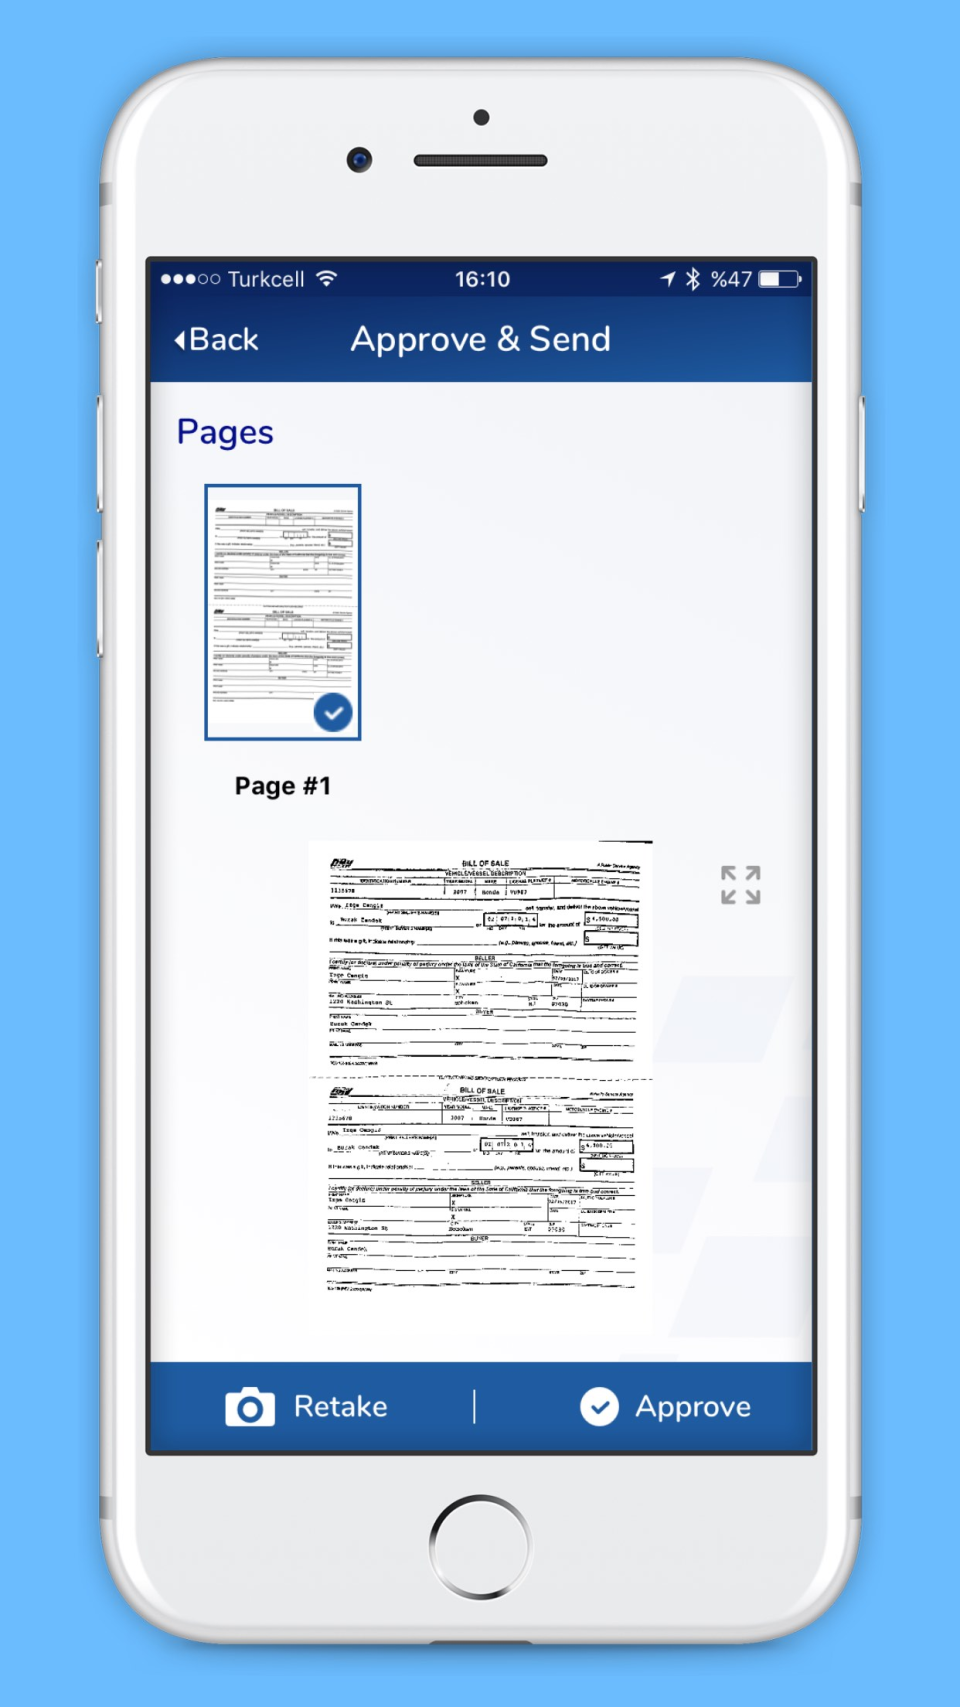 Approve & send captured documents